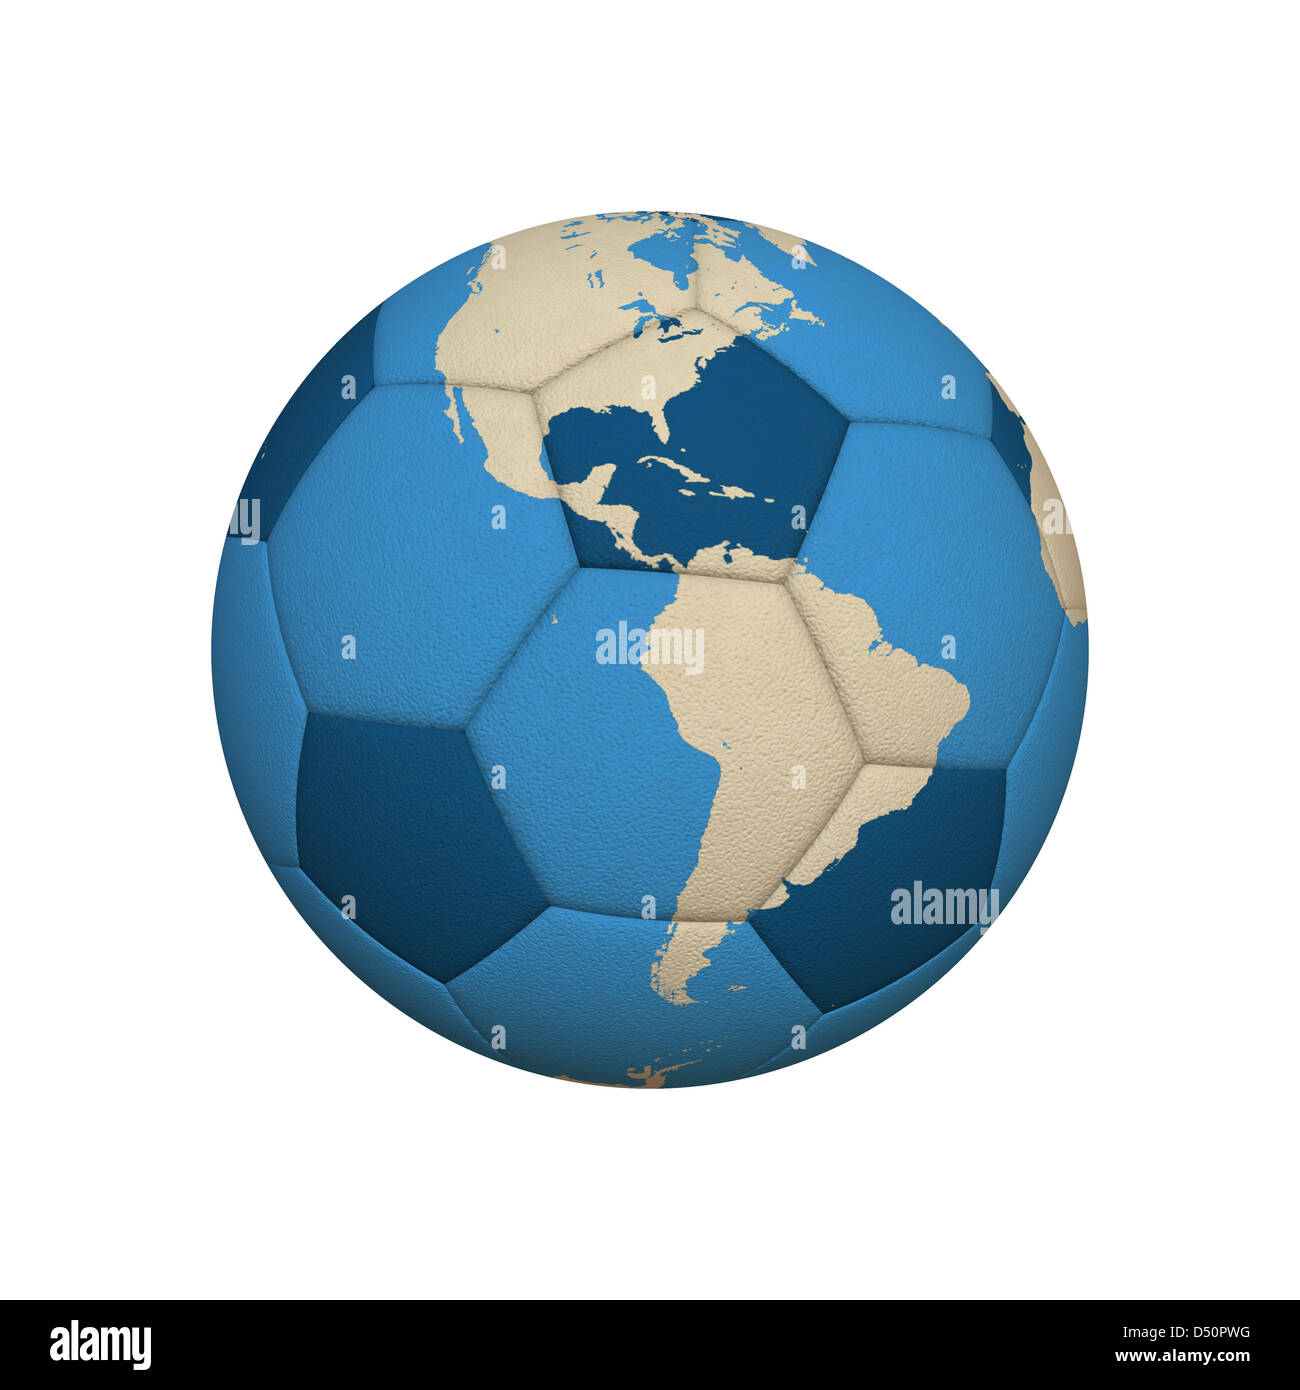 World map on a soccer ball centered on american continent jpeg file world map on a soccer ball centered on american continent jpeg file has clipping path gumiabroncs Images